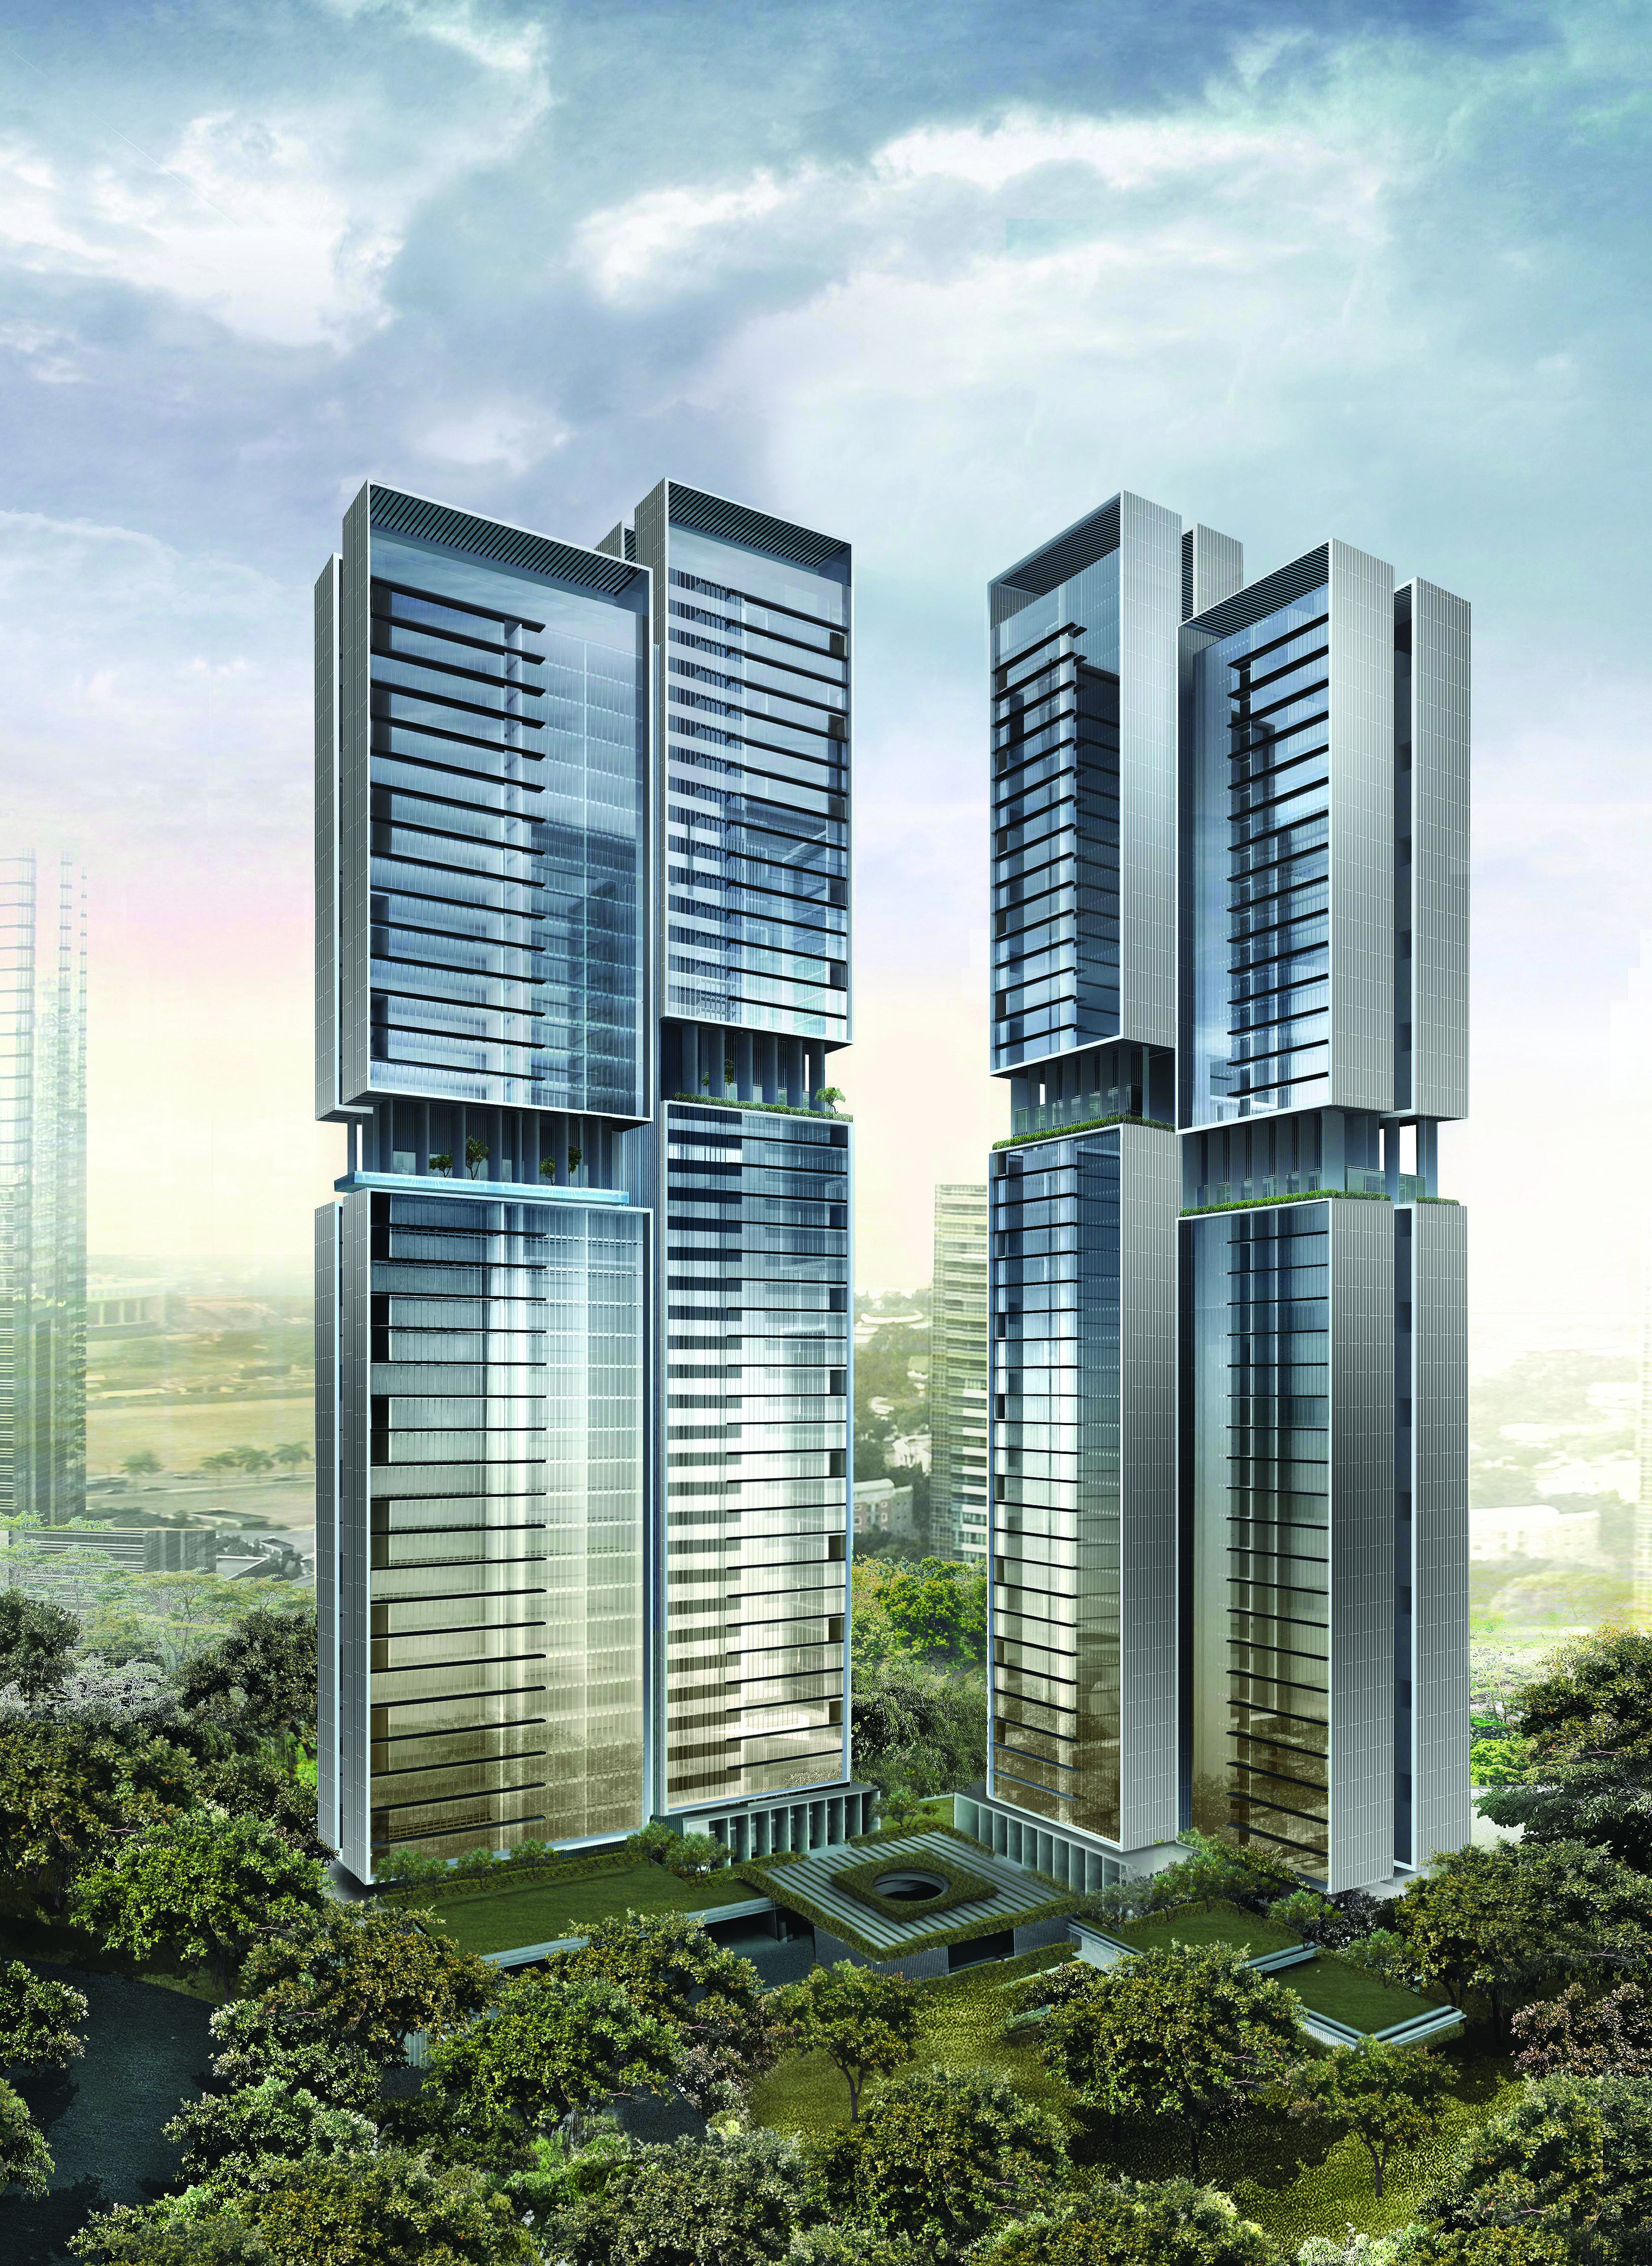 Frasers hospitality strengthens foothold in southeast asias largest new serviced residence in iconic ciputra world 2 jakarta anchors frasers hospitalitys position as indonesias leading serviced apartment brand gumiabroncs Choice Image